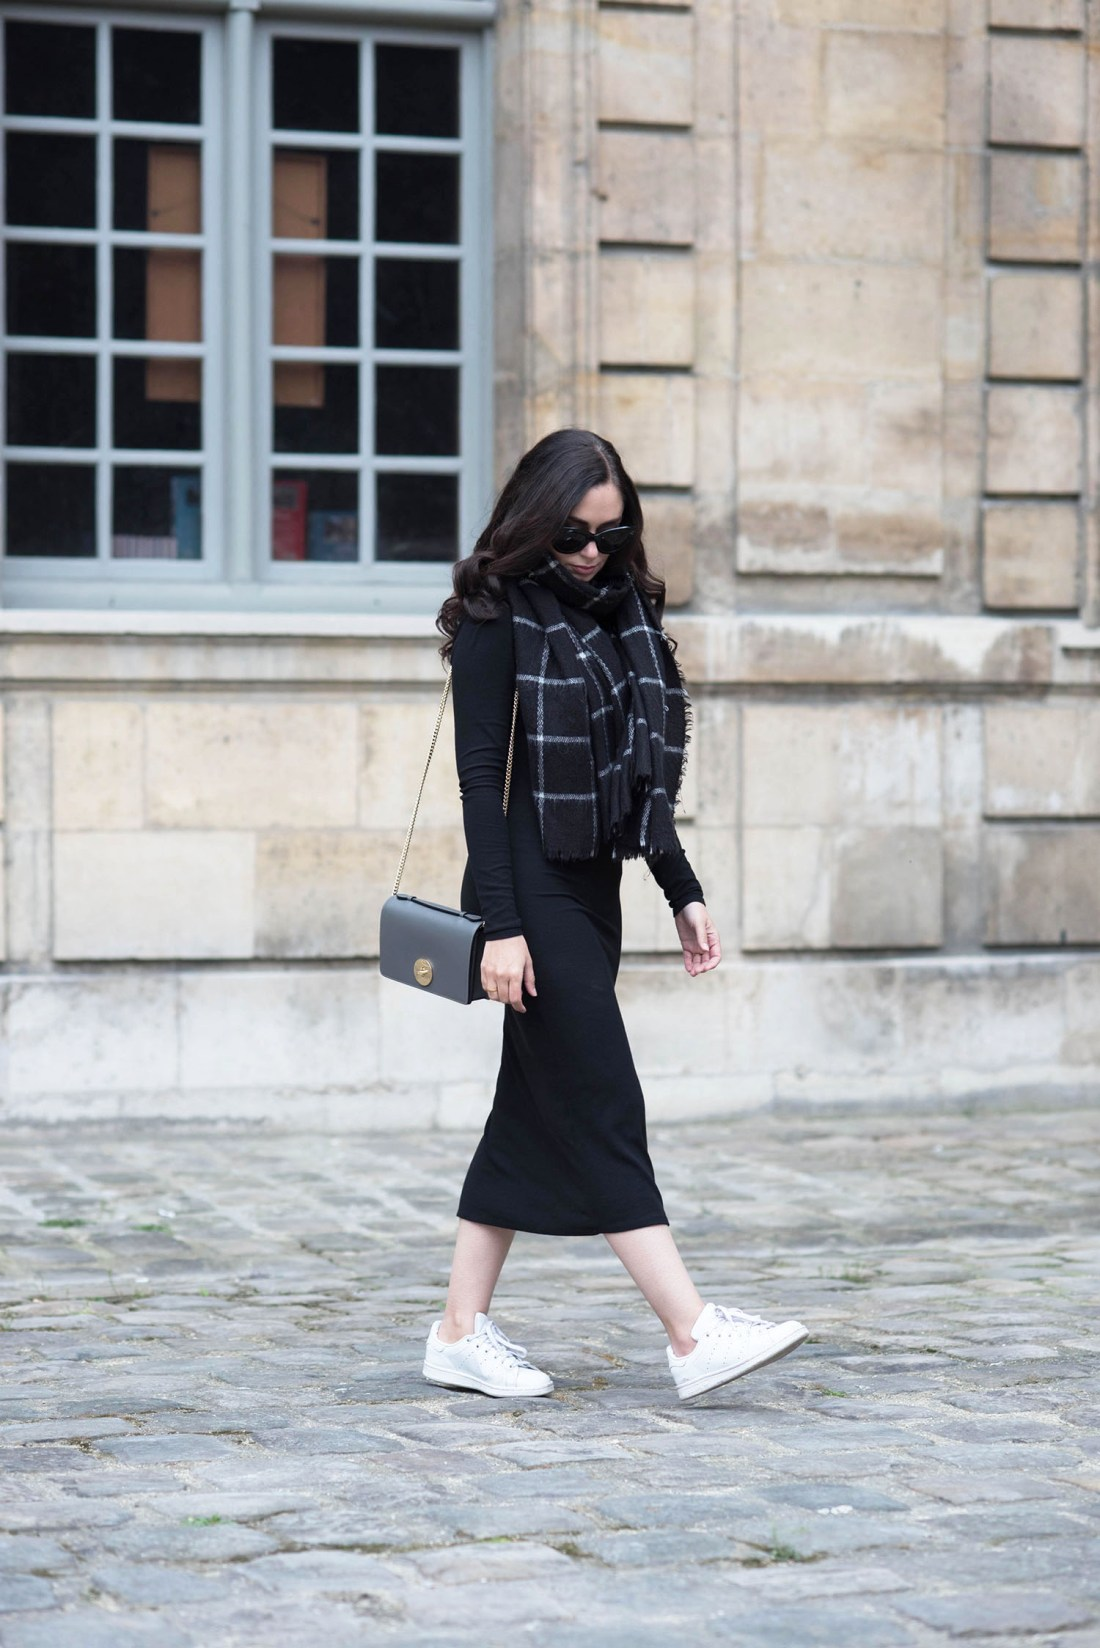 Fashion blogger Cee Fardoe of Coco & Vera walks at Hotel de Sully in Paris wearing a Privacy Please Midway dress and Adidas Stan Smith sneakers